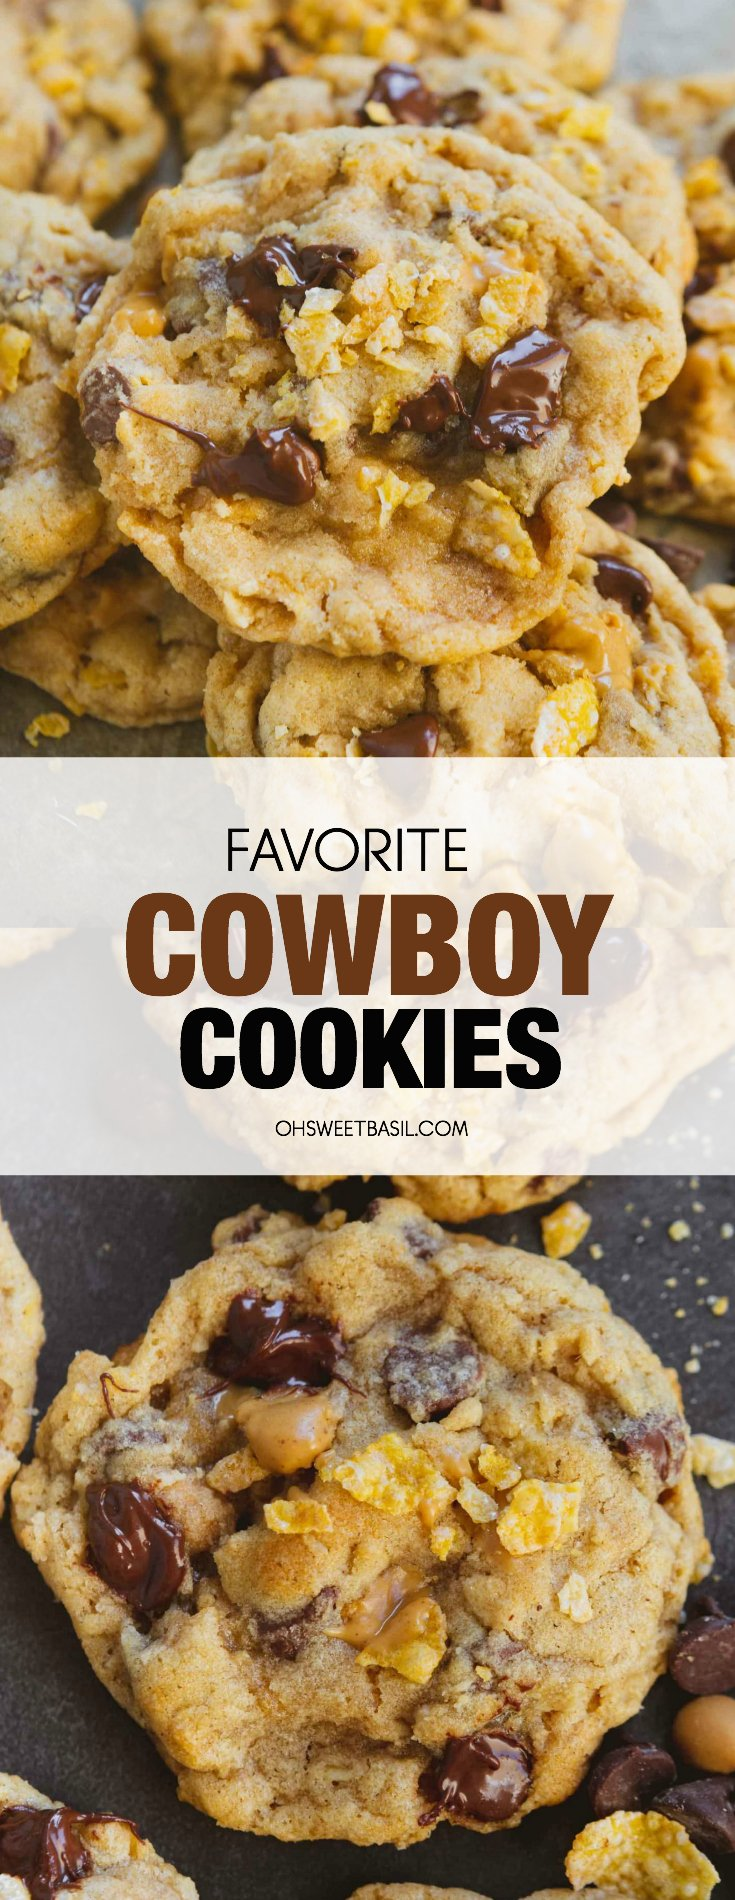 a stack of cowboy cookies with melty chocolate and peanut butter chips.